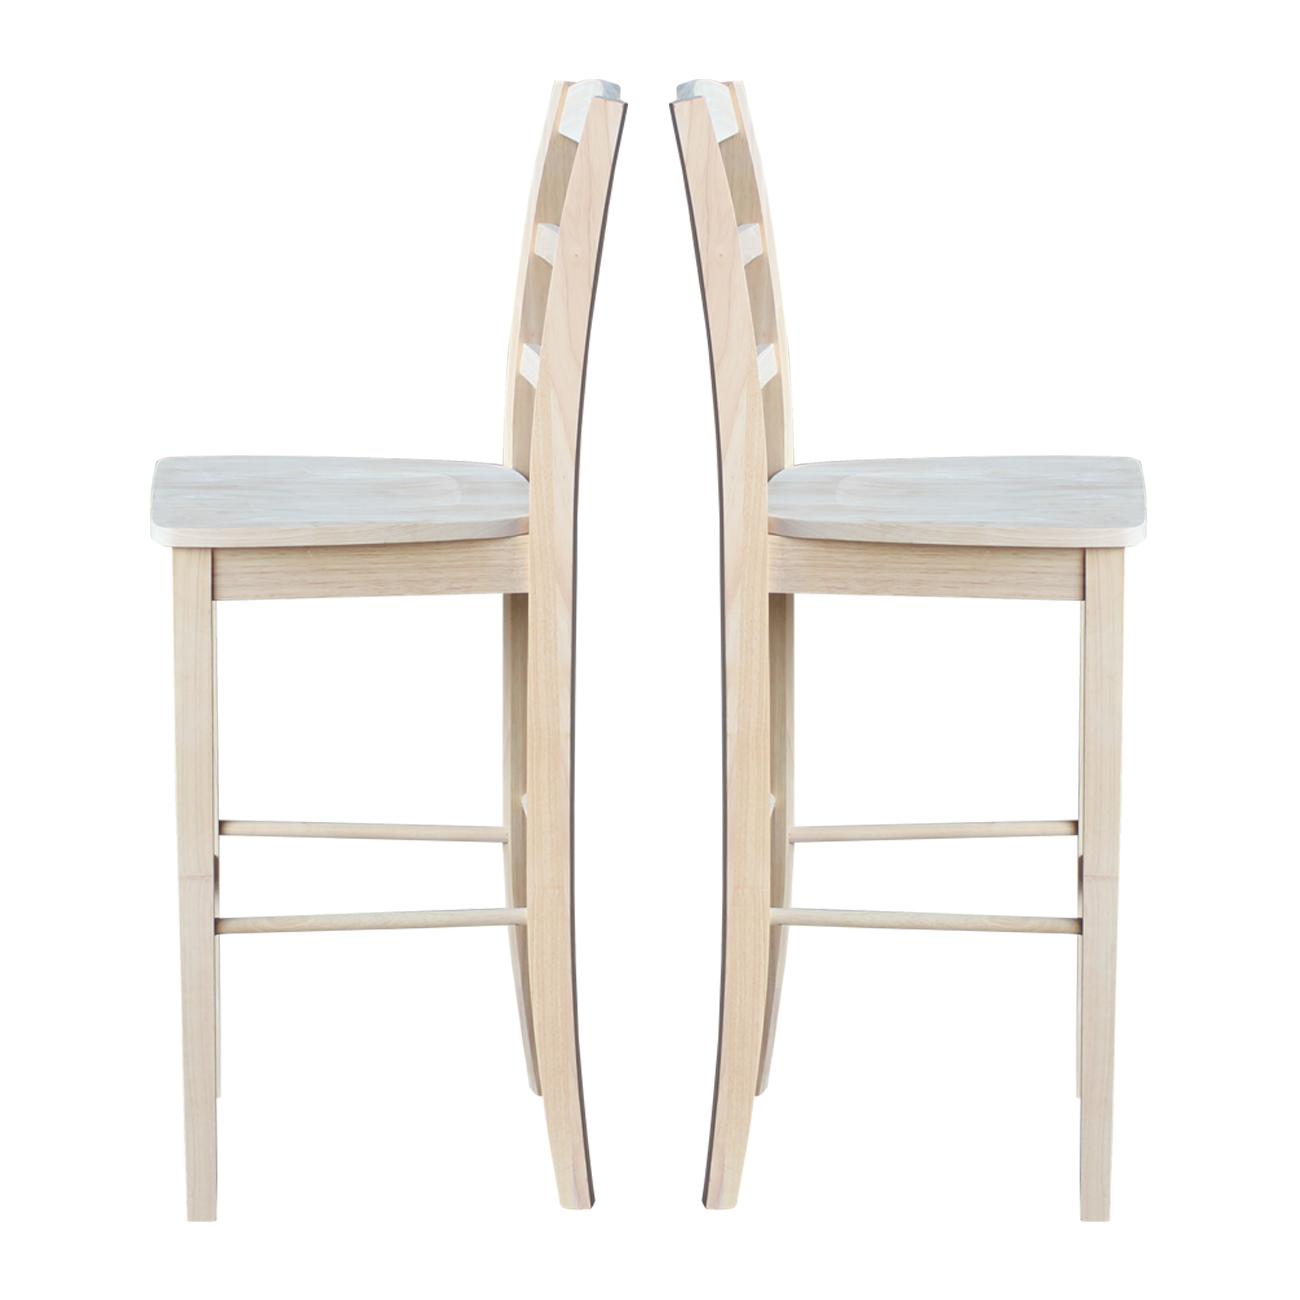 The Whitewood Madrid Counter And Bar Stool Are Classic